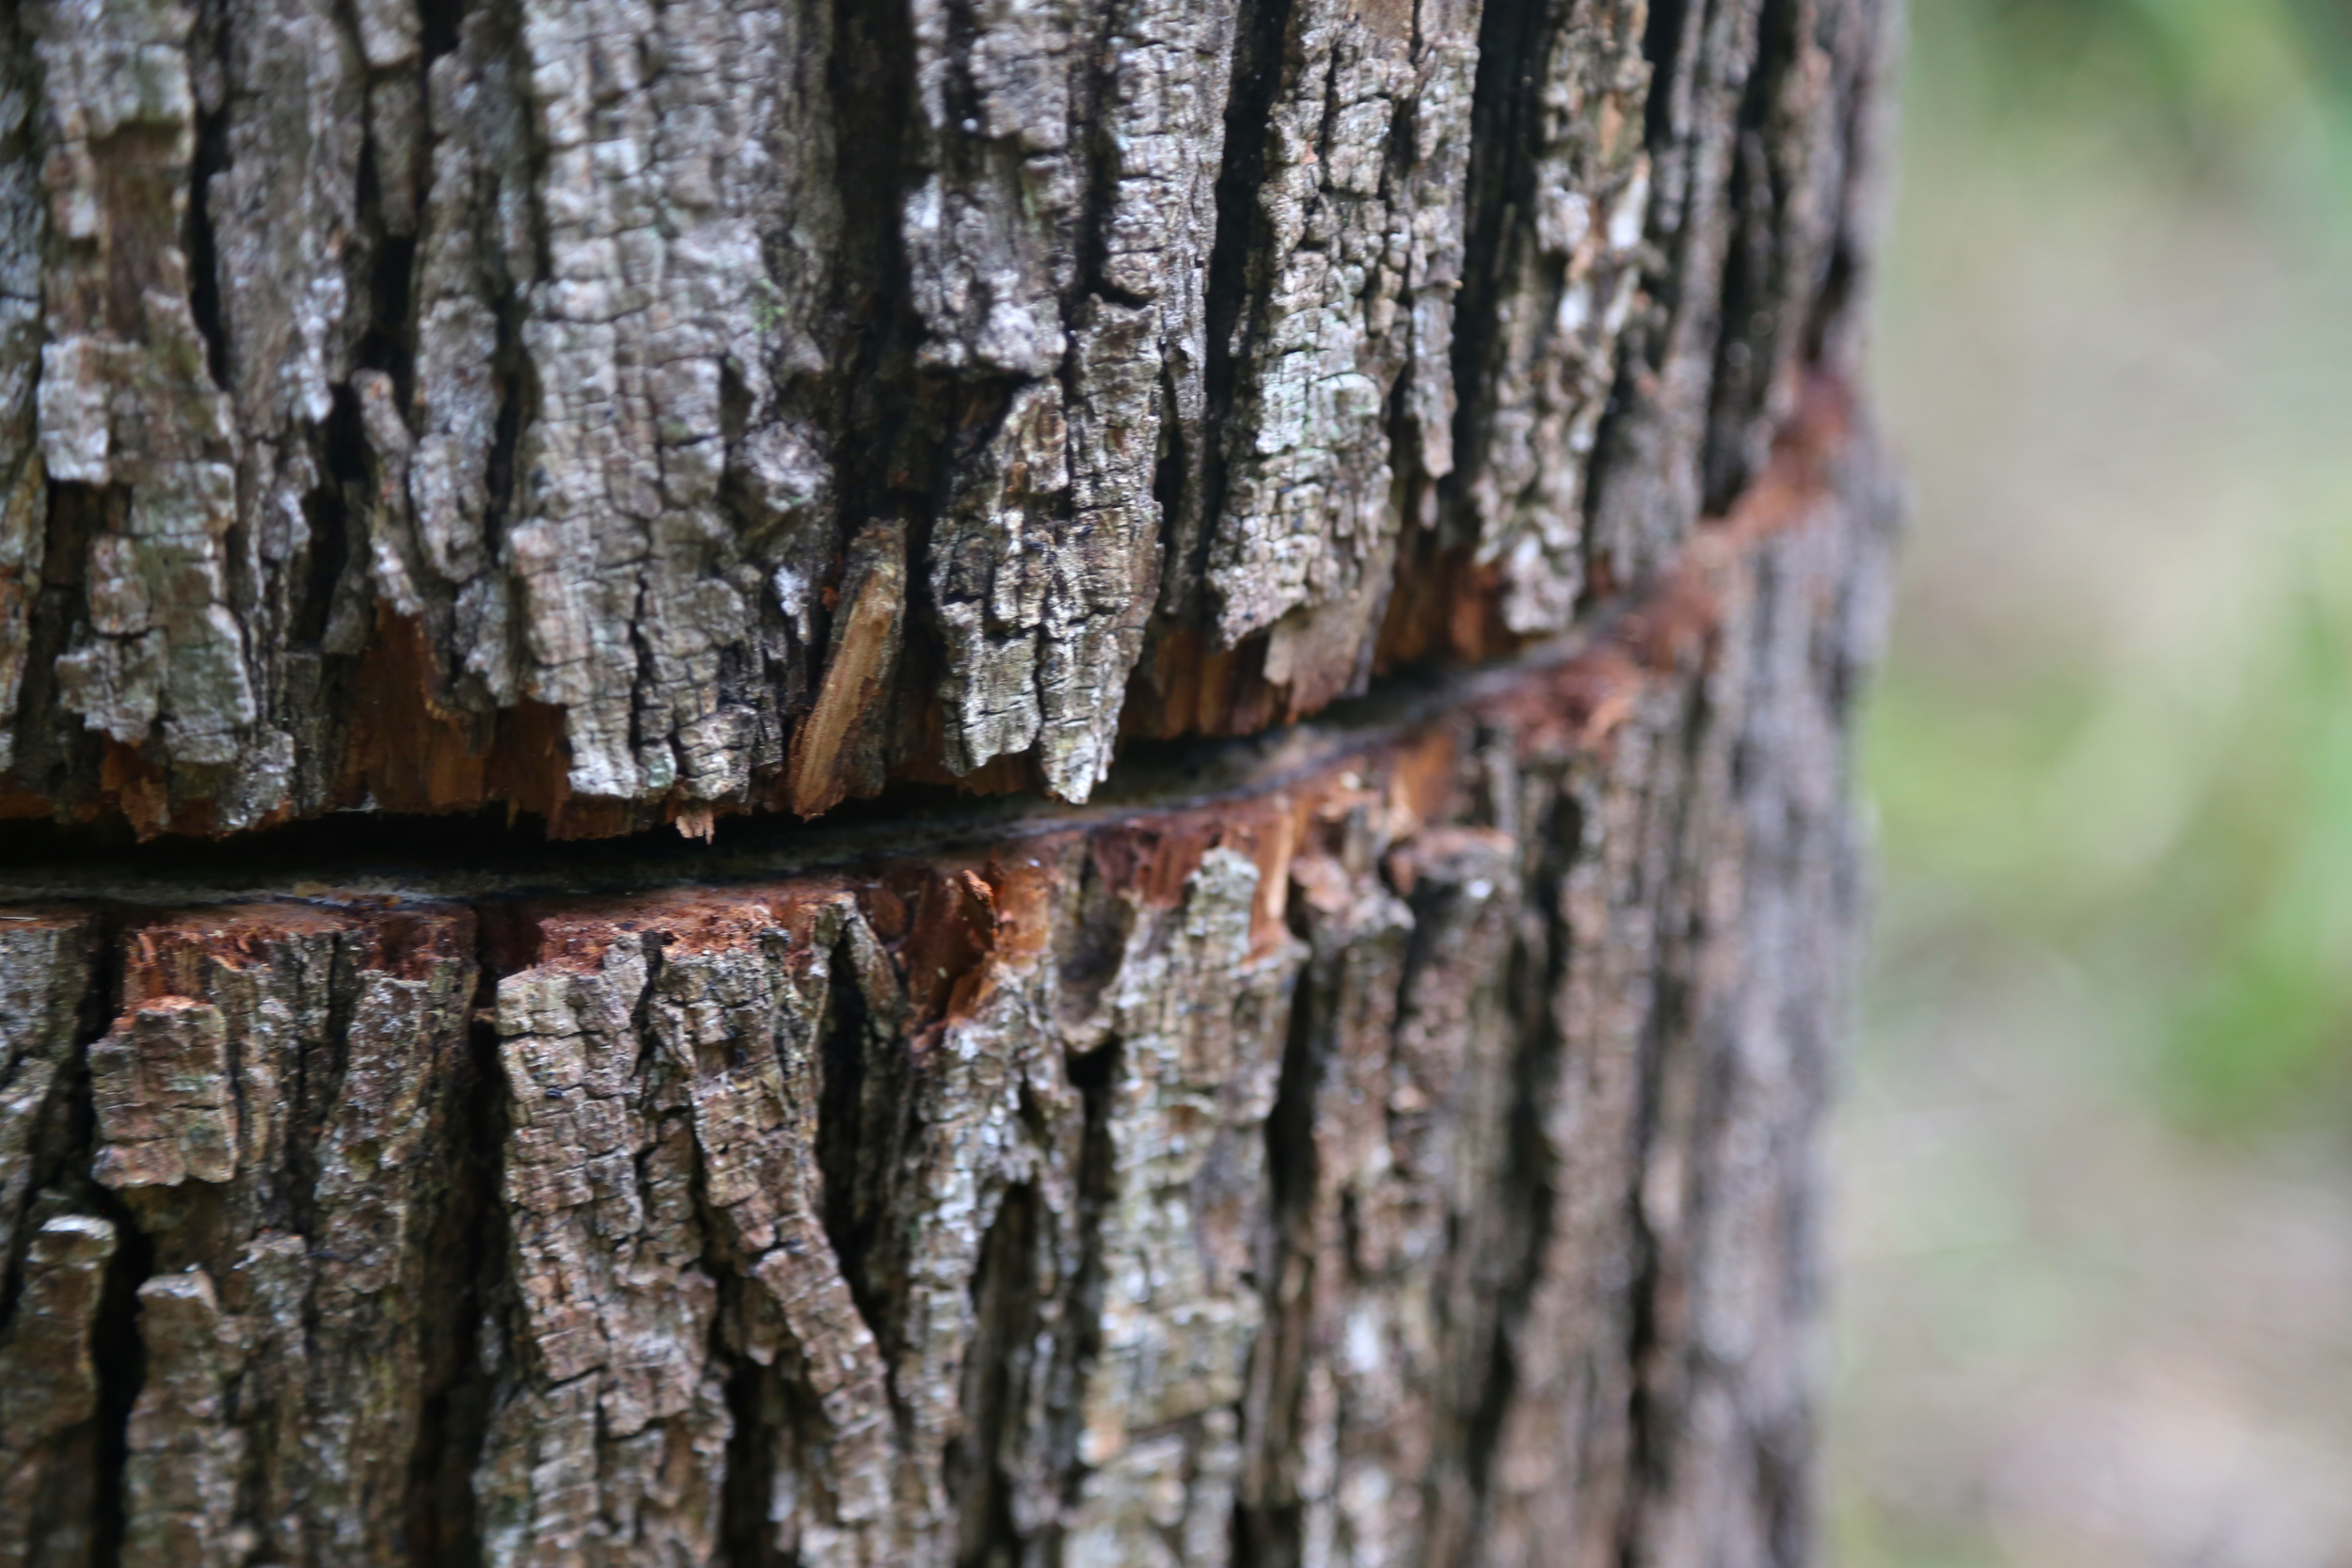 To kill this invasive tree, Howard Homan made a small cut in the tree's side that he injected with herbicide. When the tree begins to die and becomes a fall risk, a team will return toremove it.